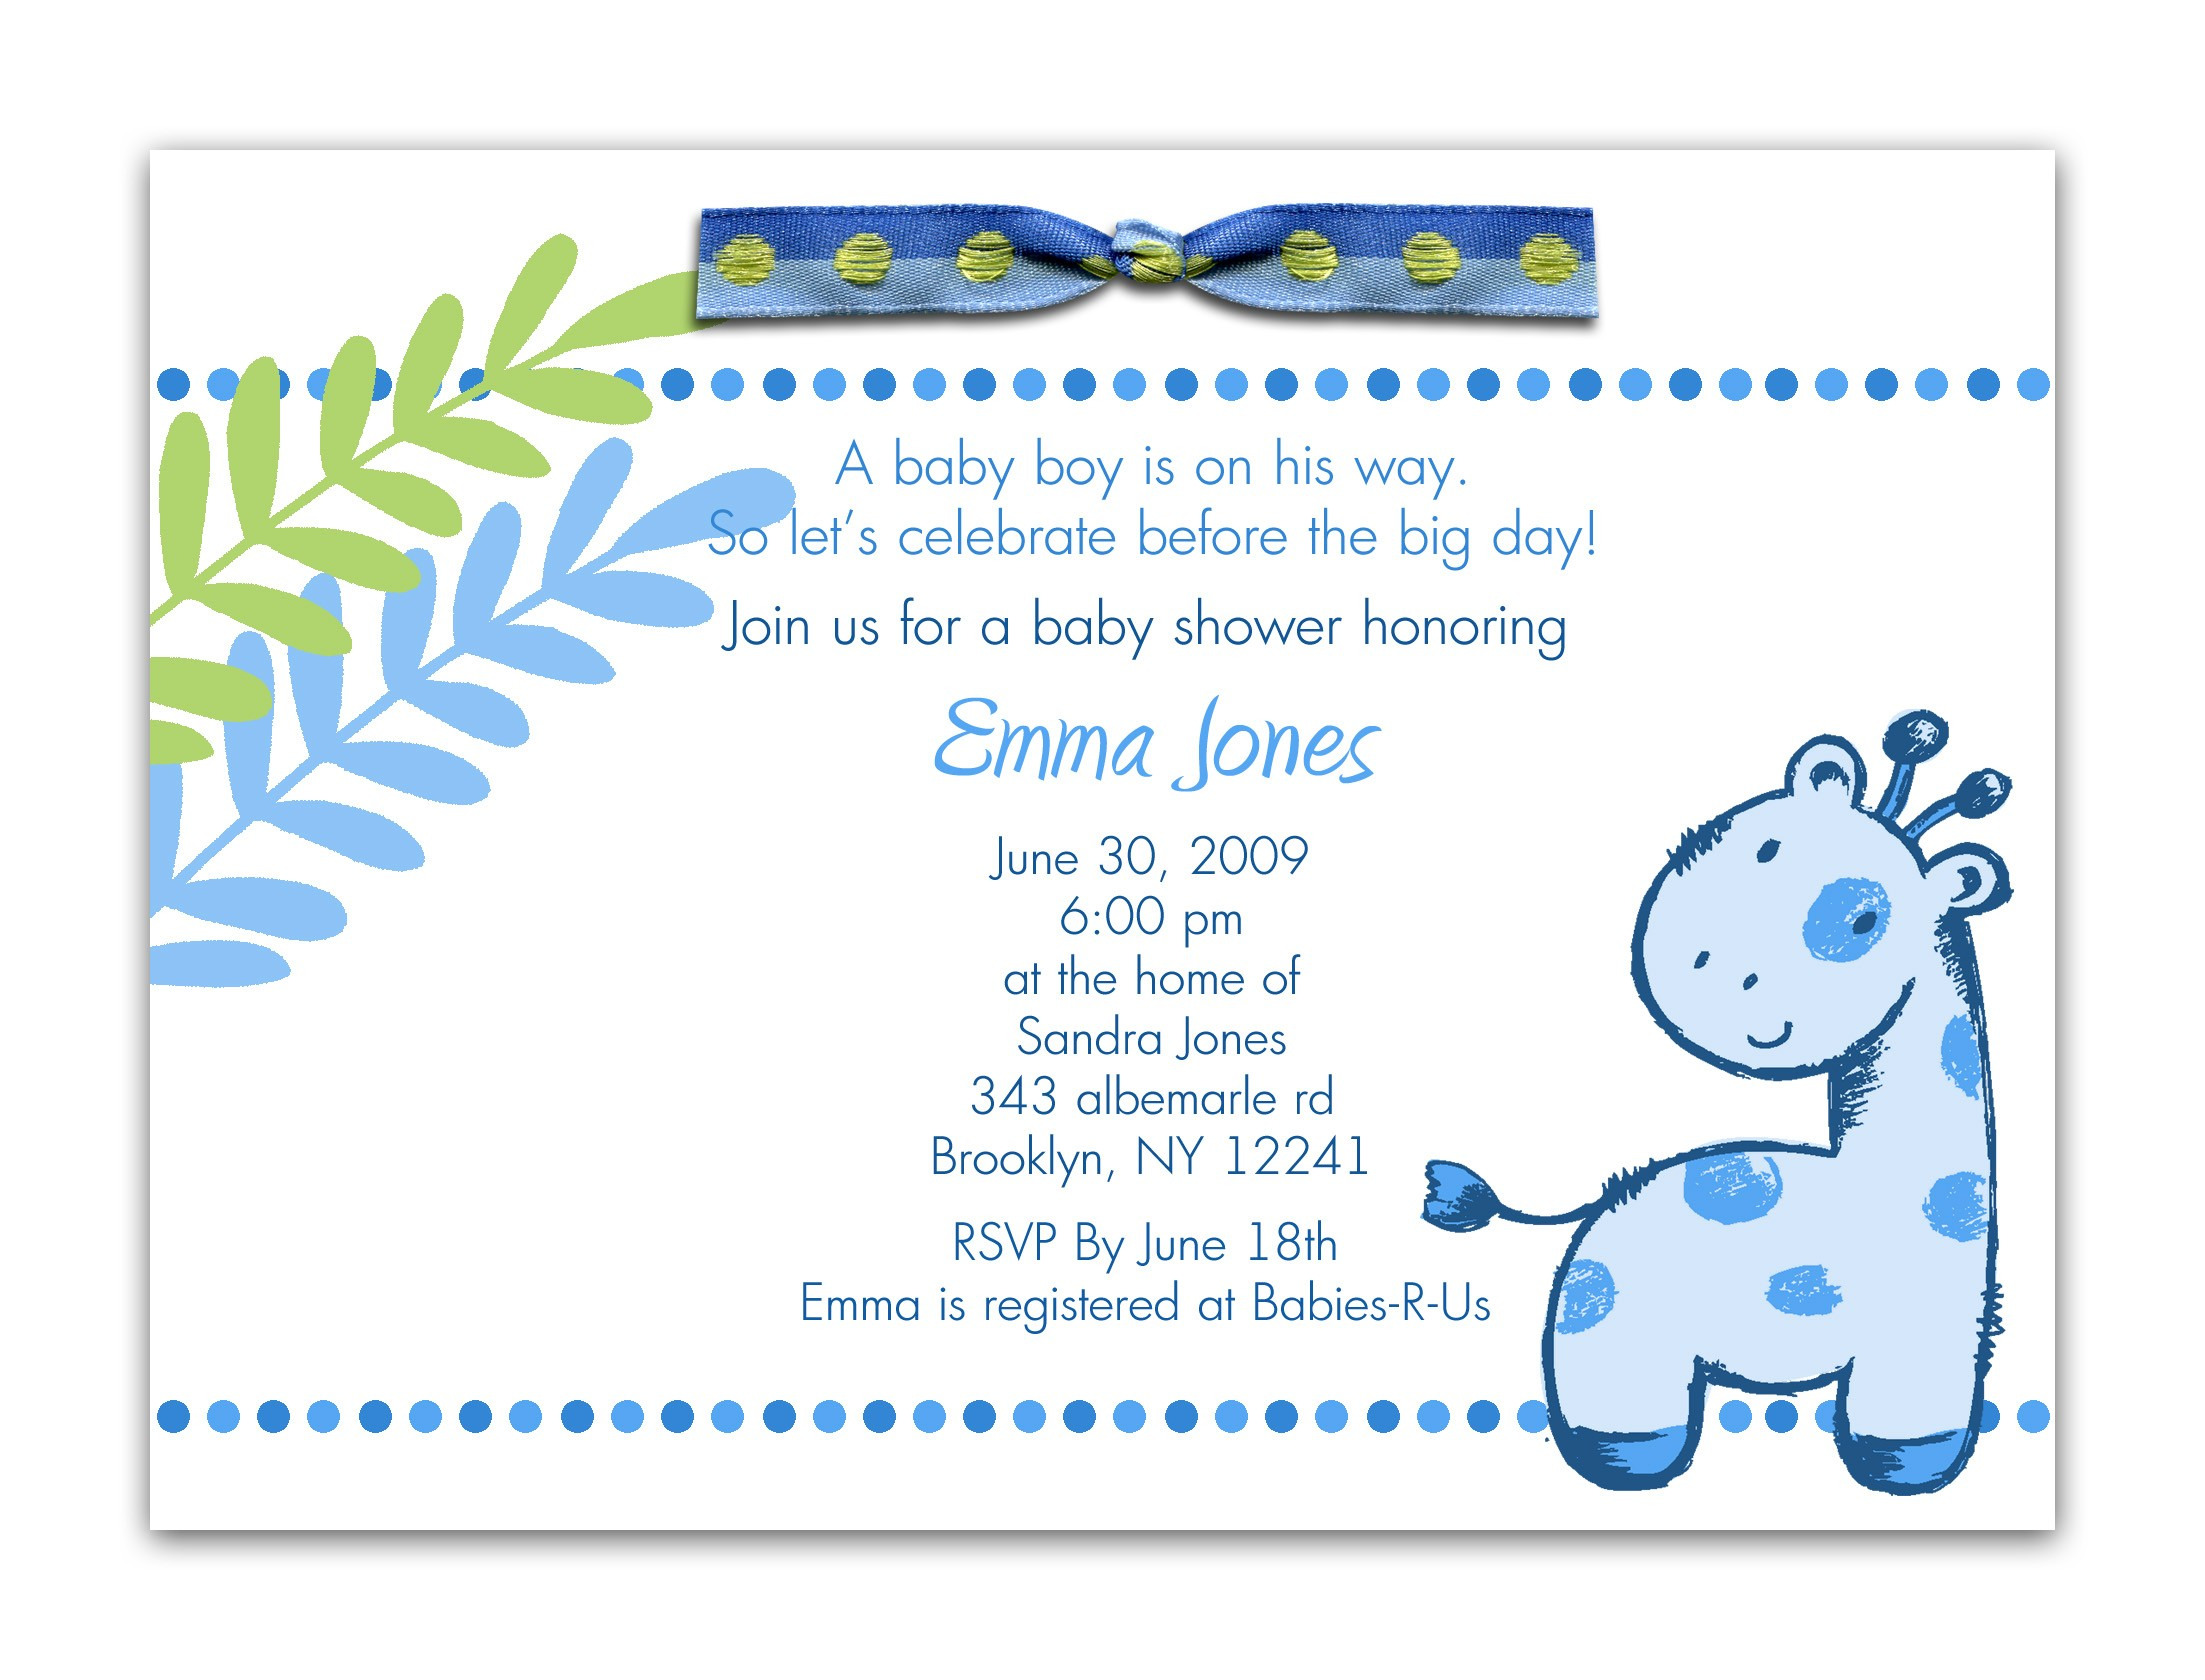 Full Size of Baby Shower:delightful Baby Shower Invitation Wording Picture Designs Baby Shower Invitation Wording Luxury Baby Boy Shower Invitation Wording Baby Shower Ideas